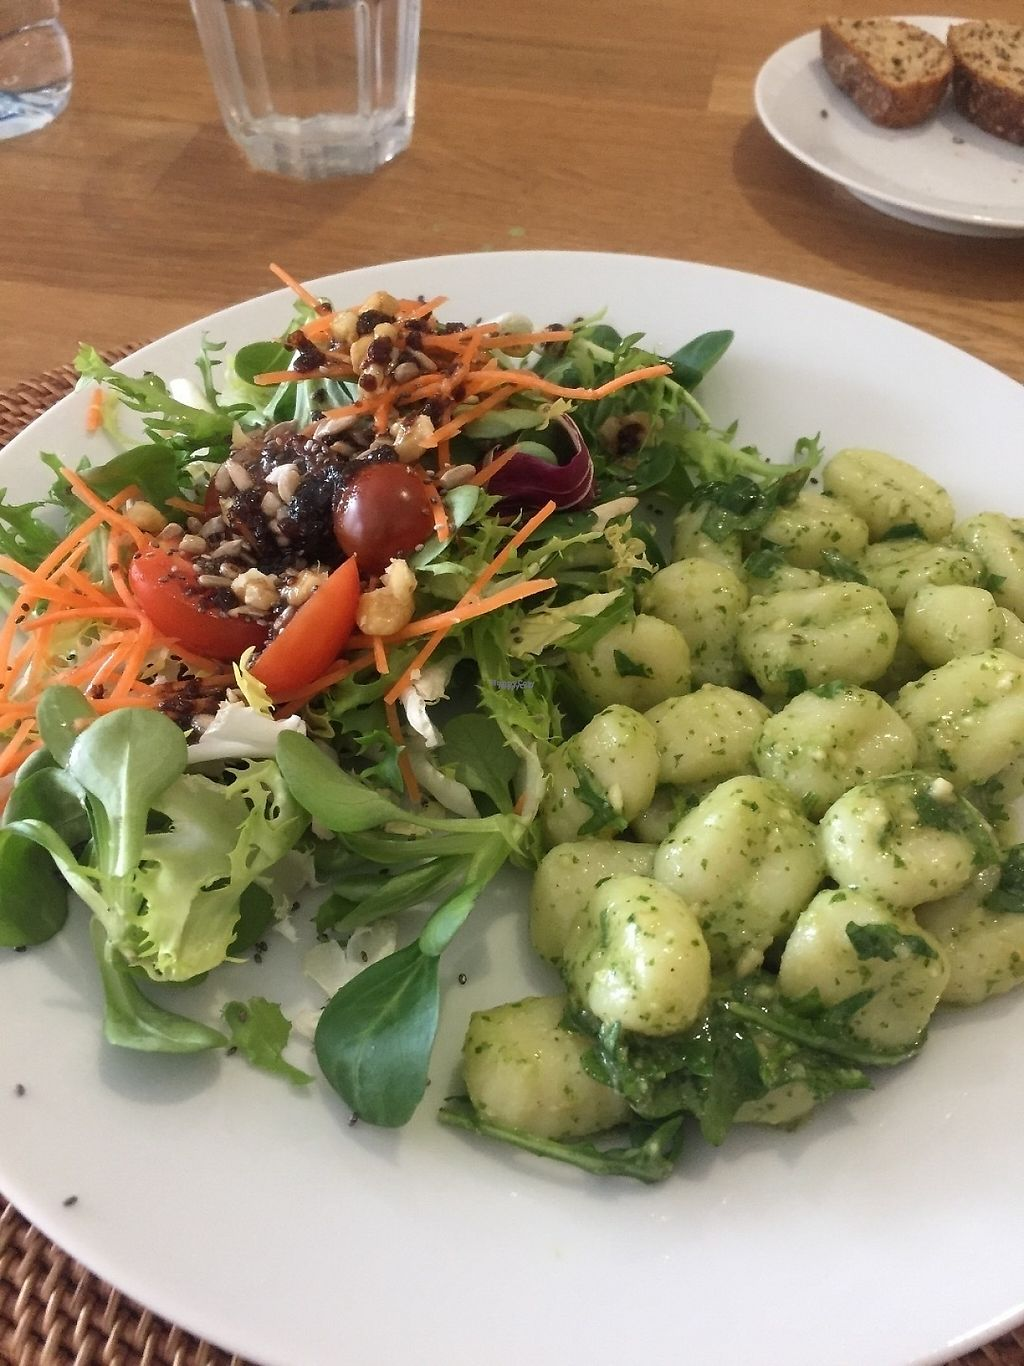 """Photo of The Farmacy Cafe  by <a href=""""/members/profile/Bellyveggie"""">Bellyveggie</a> <br/>Pesto pasta and salad. Menu of the day for 12 euros..... included a tomato soup and carrot cake after. What a deal!  <br/> April 23, 2017  - <a href='/contact/abuse/image/86671/251362'>Report</a>"""